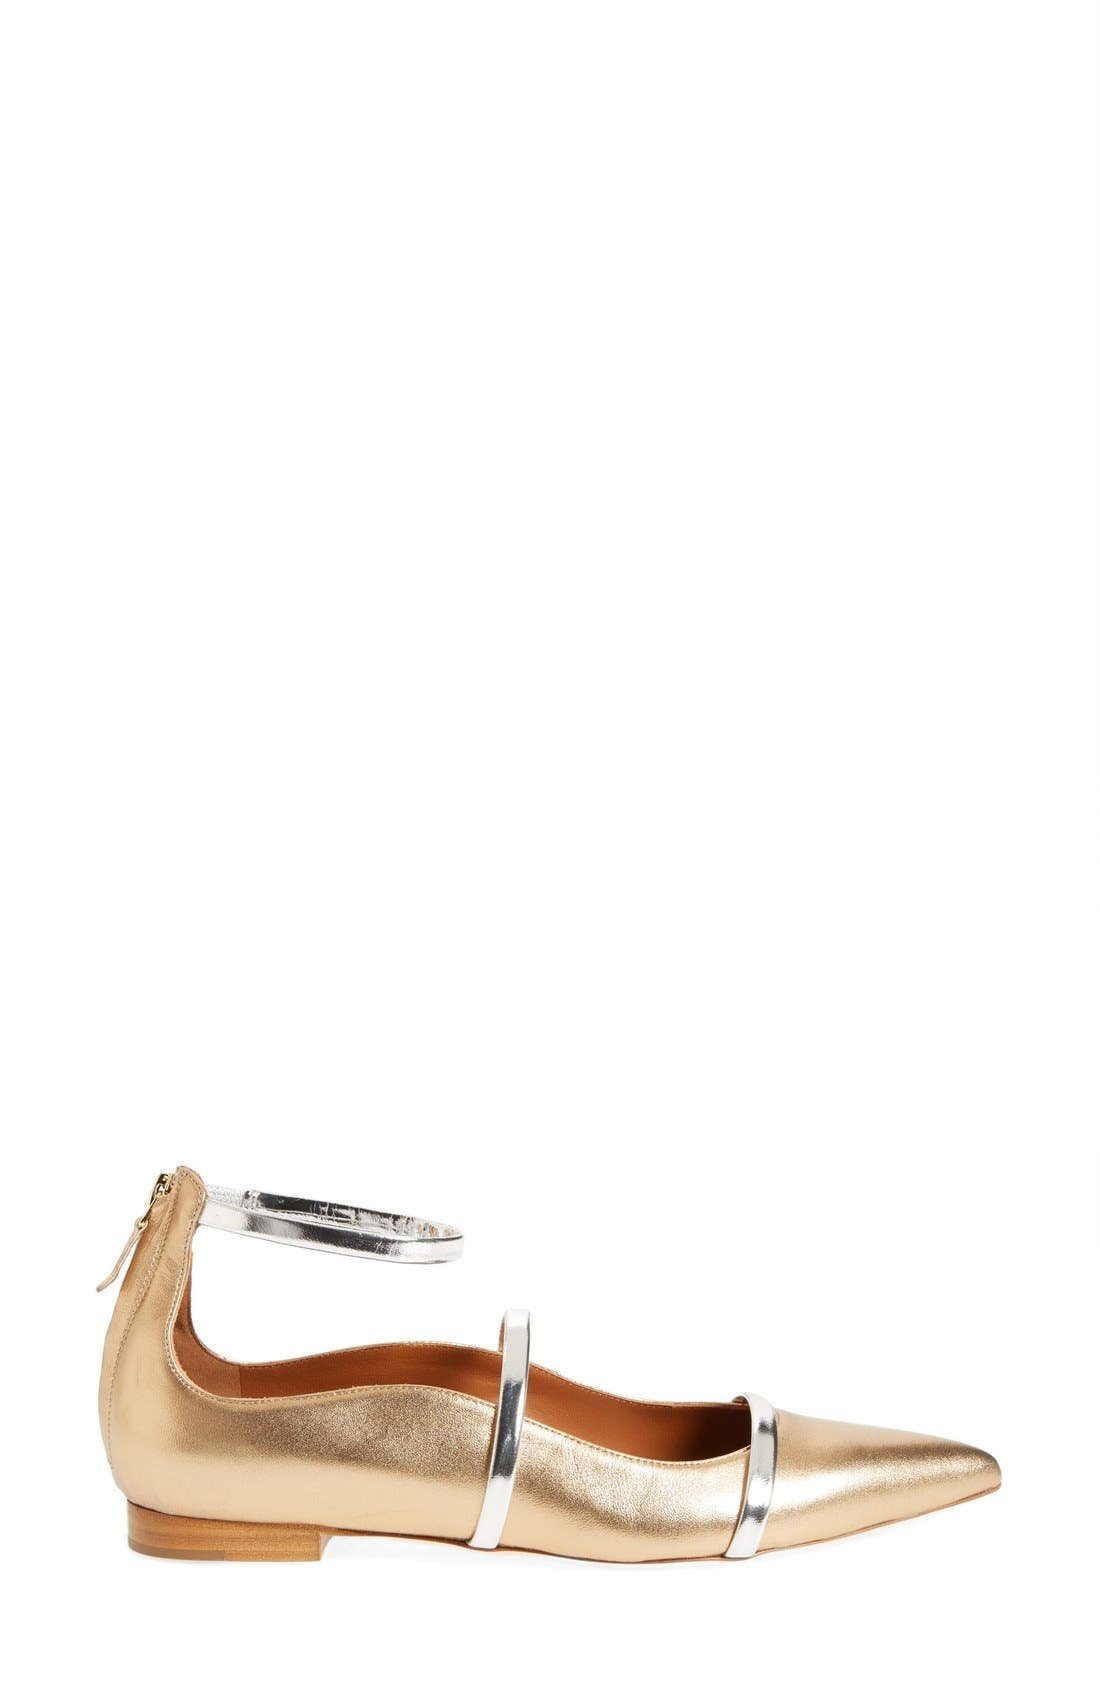 'Robyn' Ankle Strap Flat,                             Alternate thumbnail 4, color,                             710